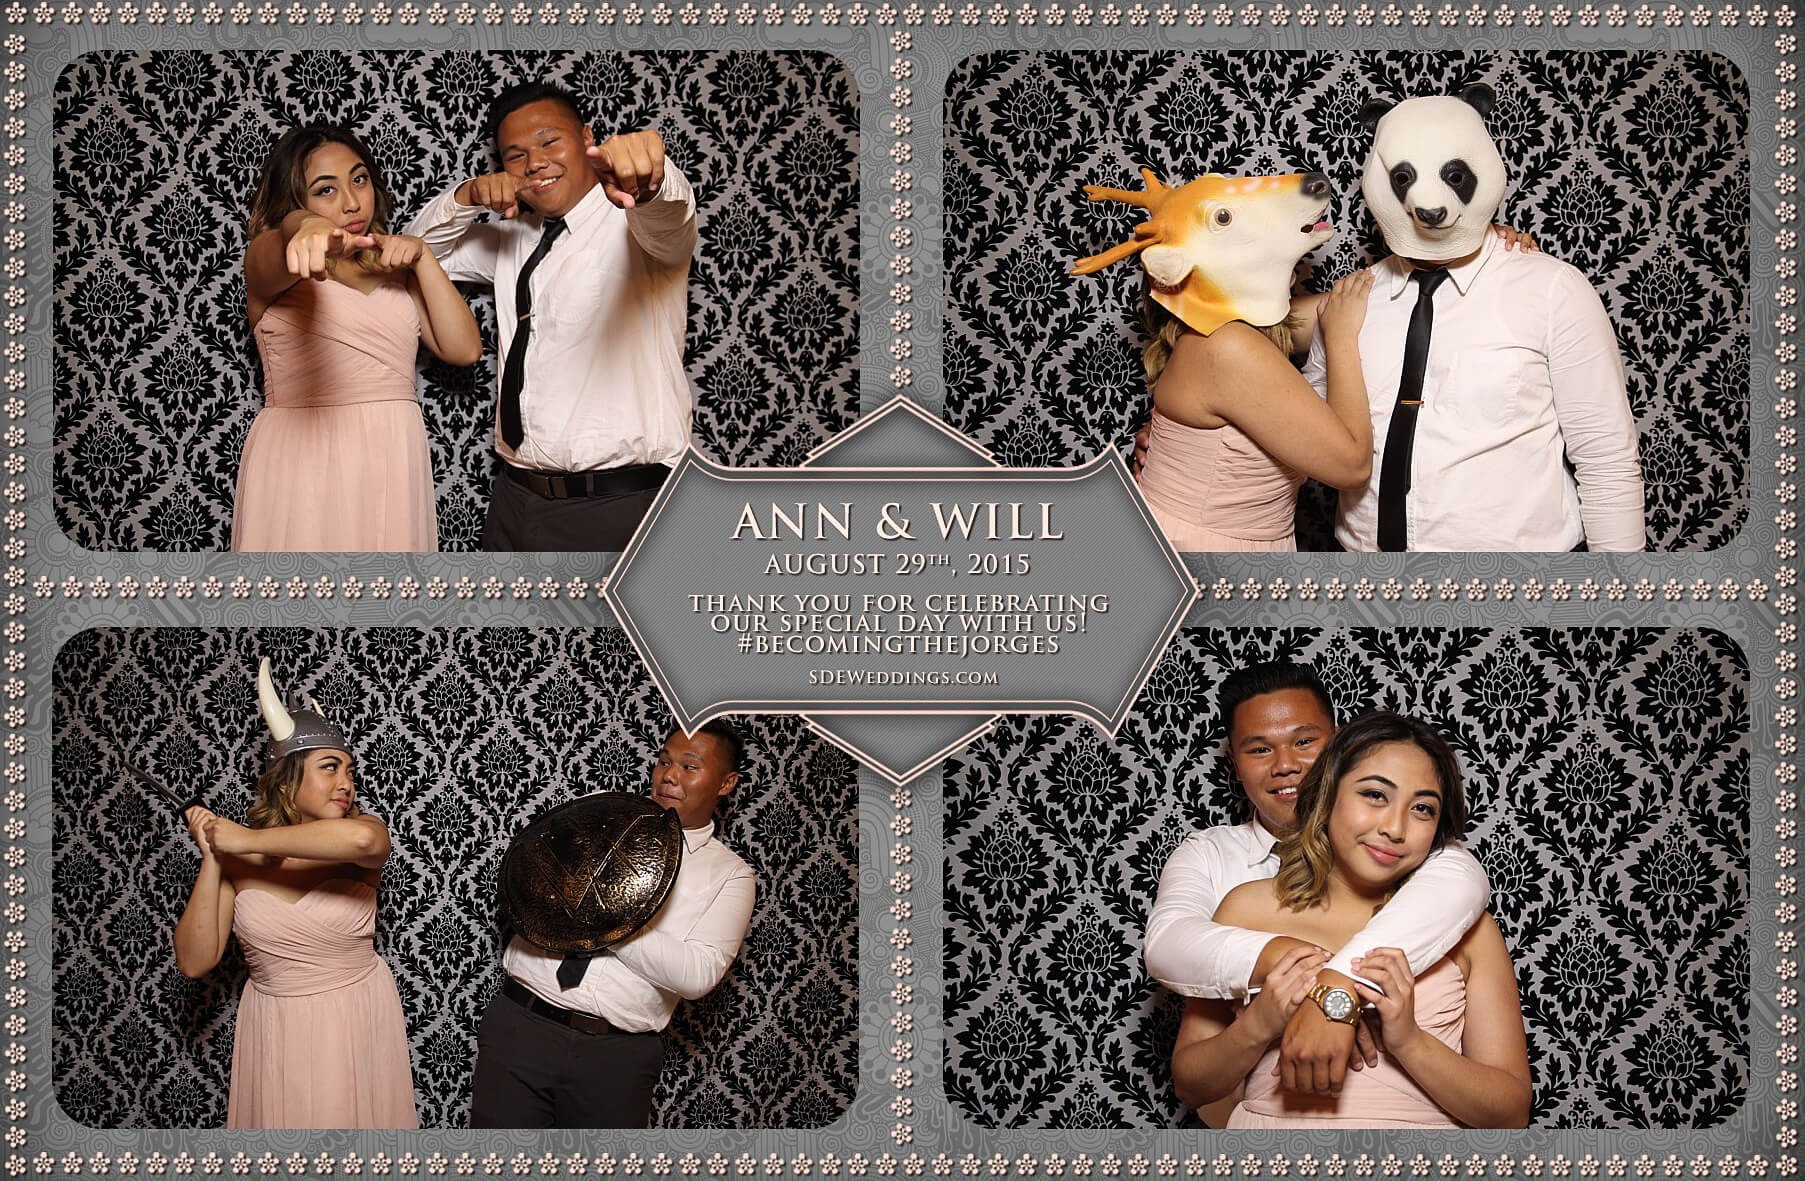 Toronto Wedding Photo Booth at Destiny Banquet Hall 5